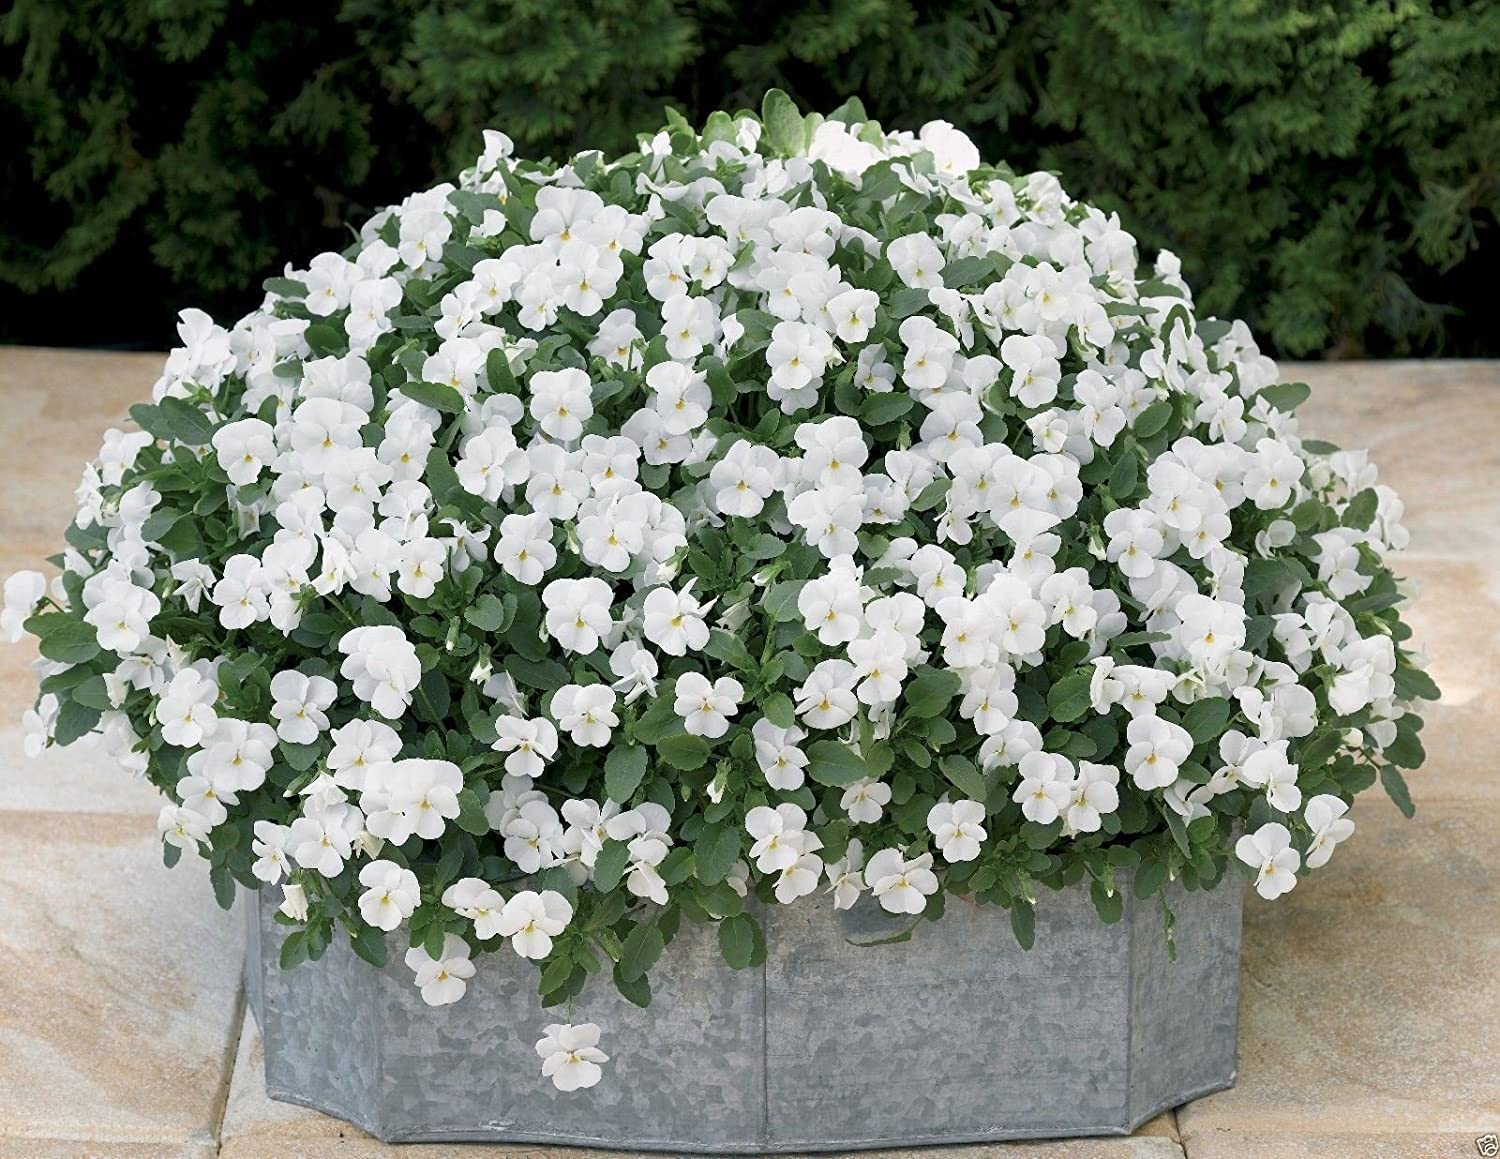 Viola Cornuta - White Perfection Fl Basket Outlet ☆ Free Shipping Garden Hanging Bed Max 64% OFF